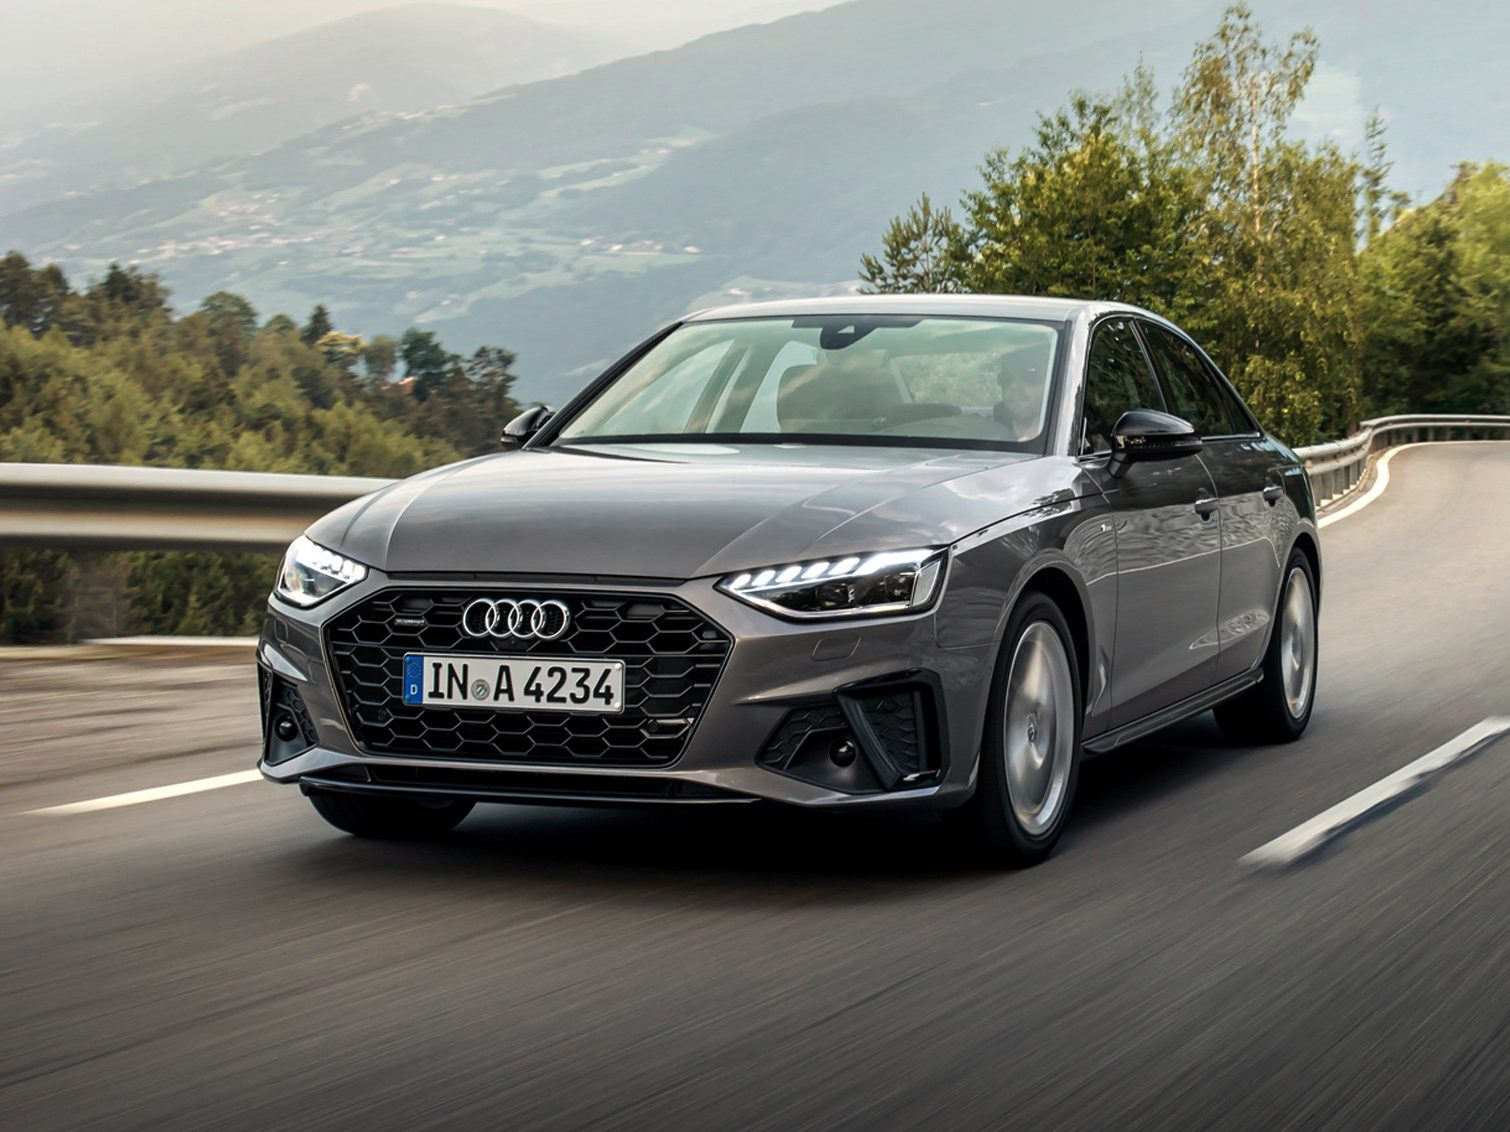 Audi A4 Saloon 40 TFSI 190ps S Tronic